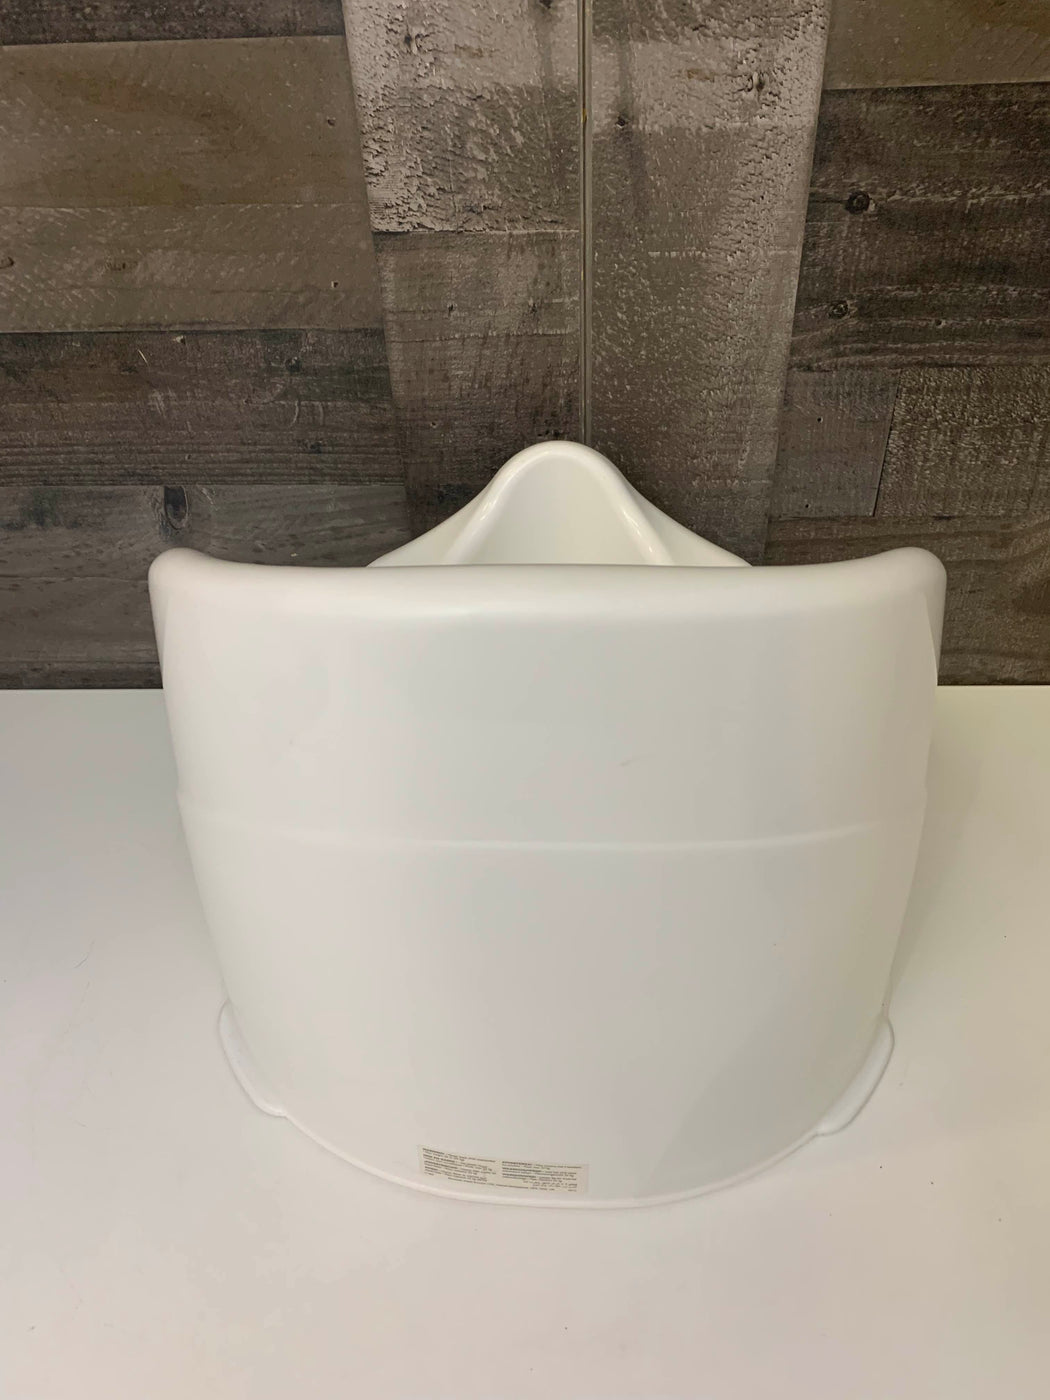 secondhand Summer Infant Lil Loo Potty